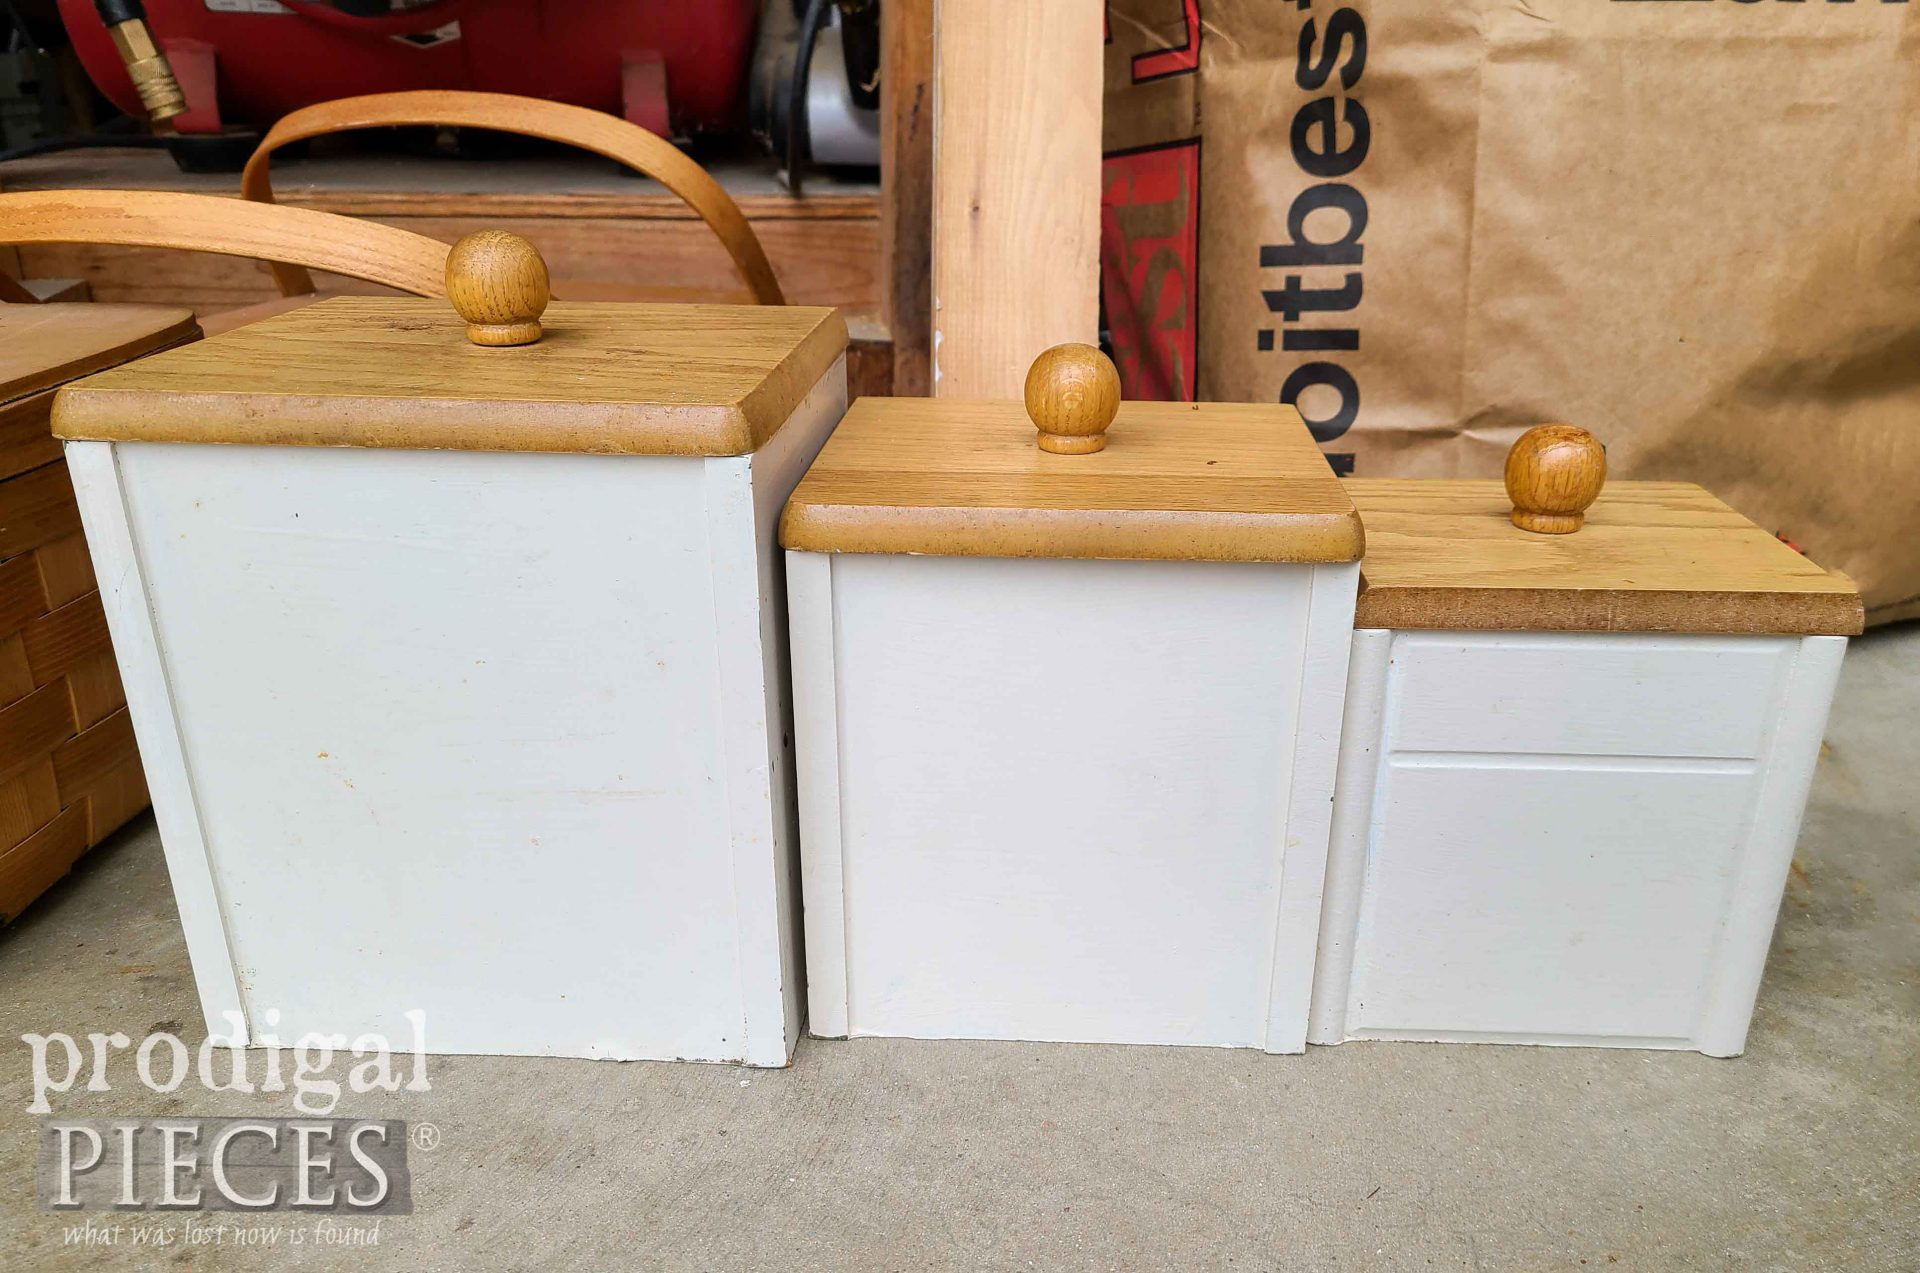 Kitchen Canisters Before Mini Makeover | prodigalpieces.com